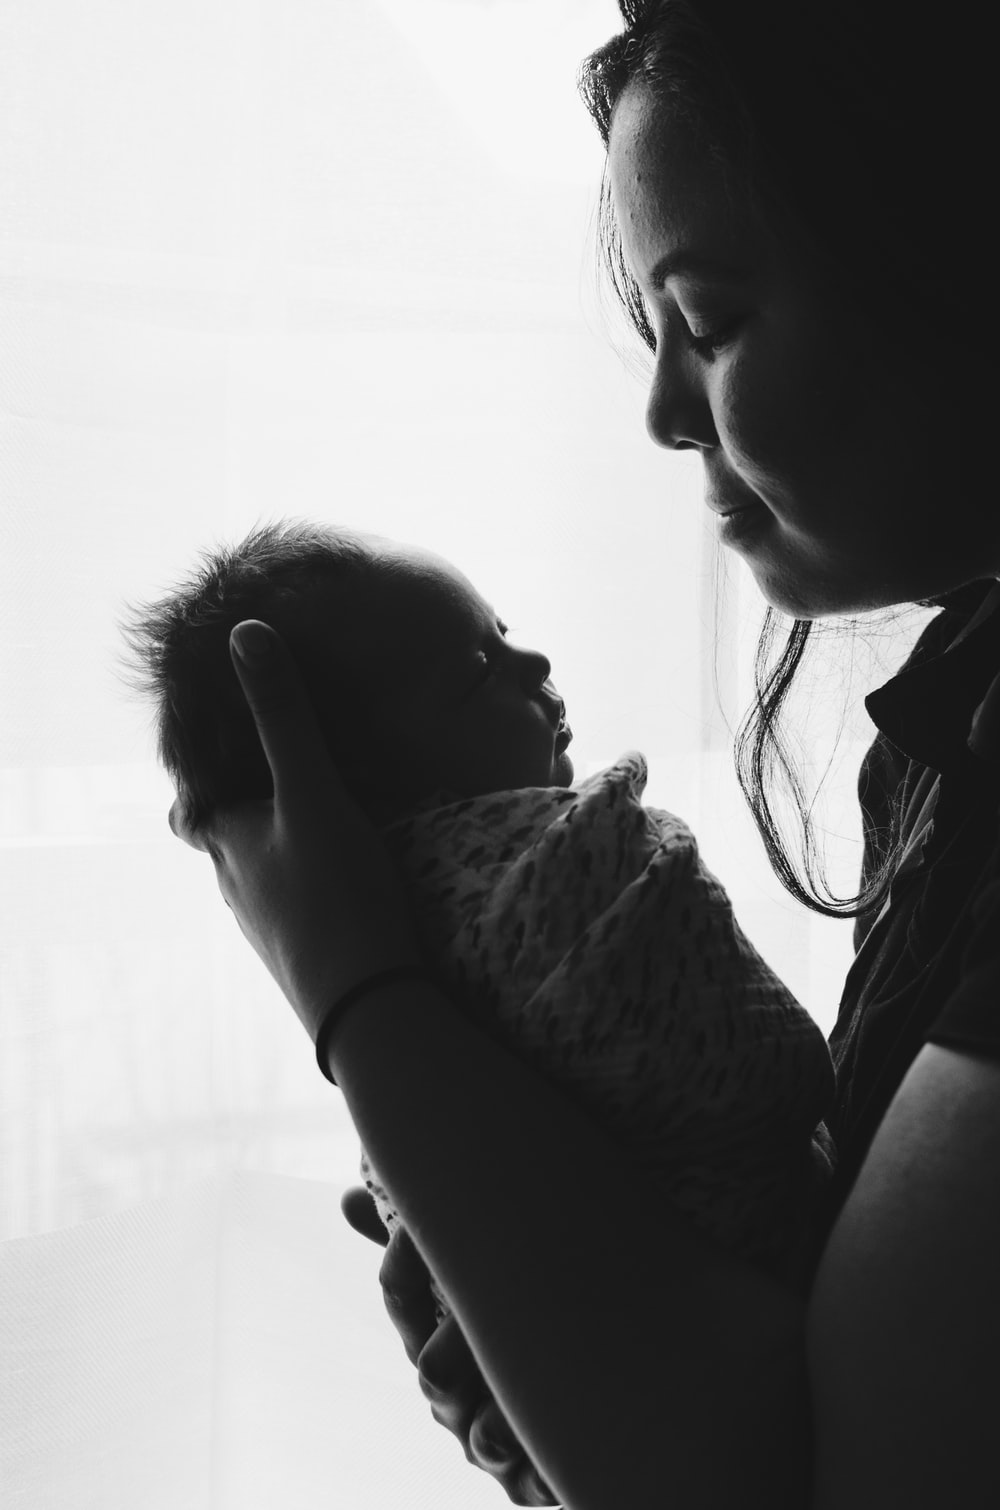 grayscale photography of woman carrying a baby